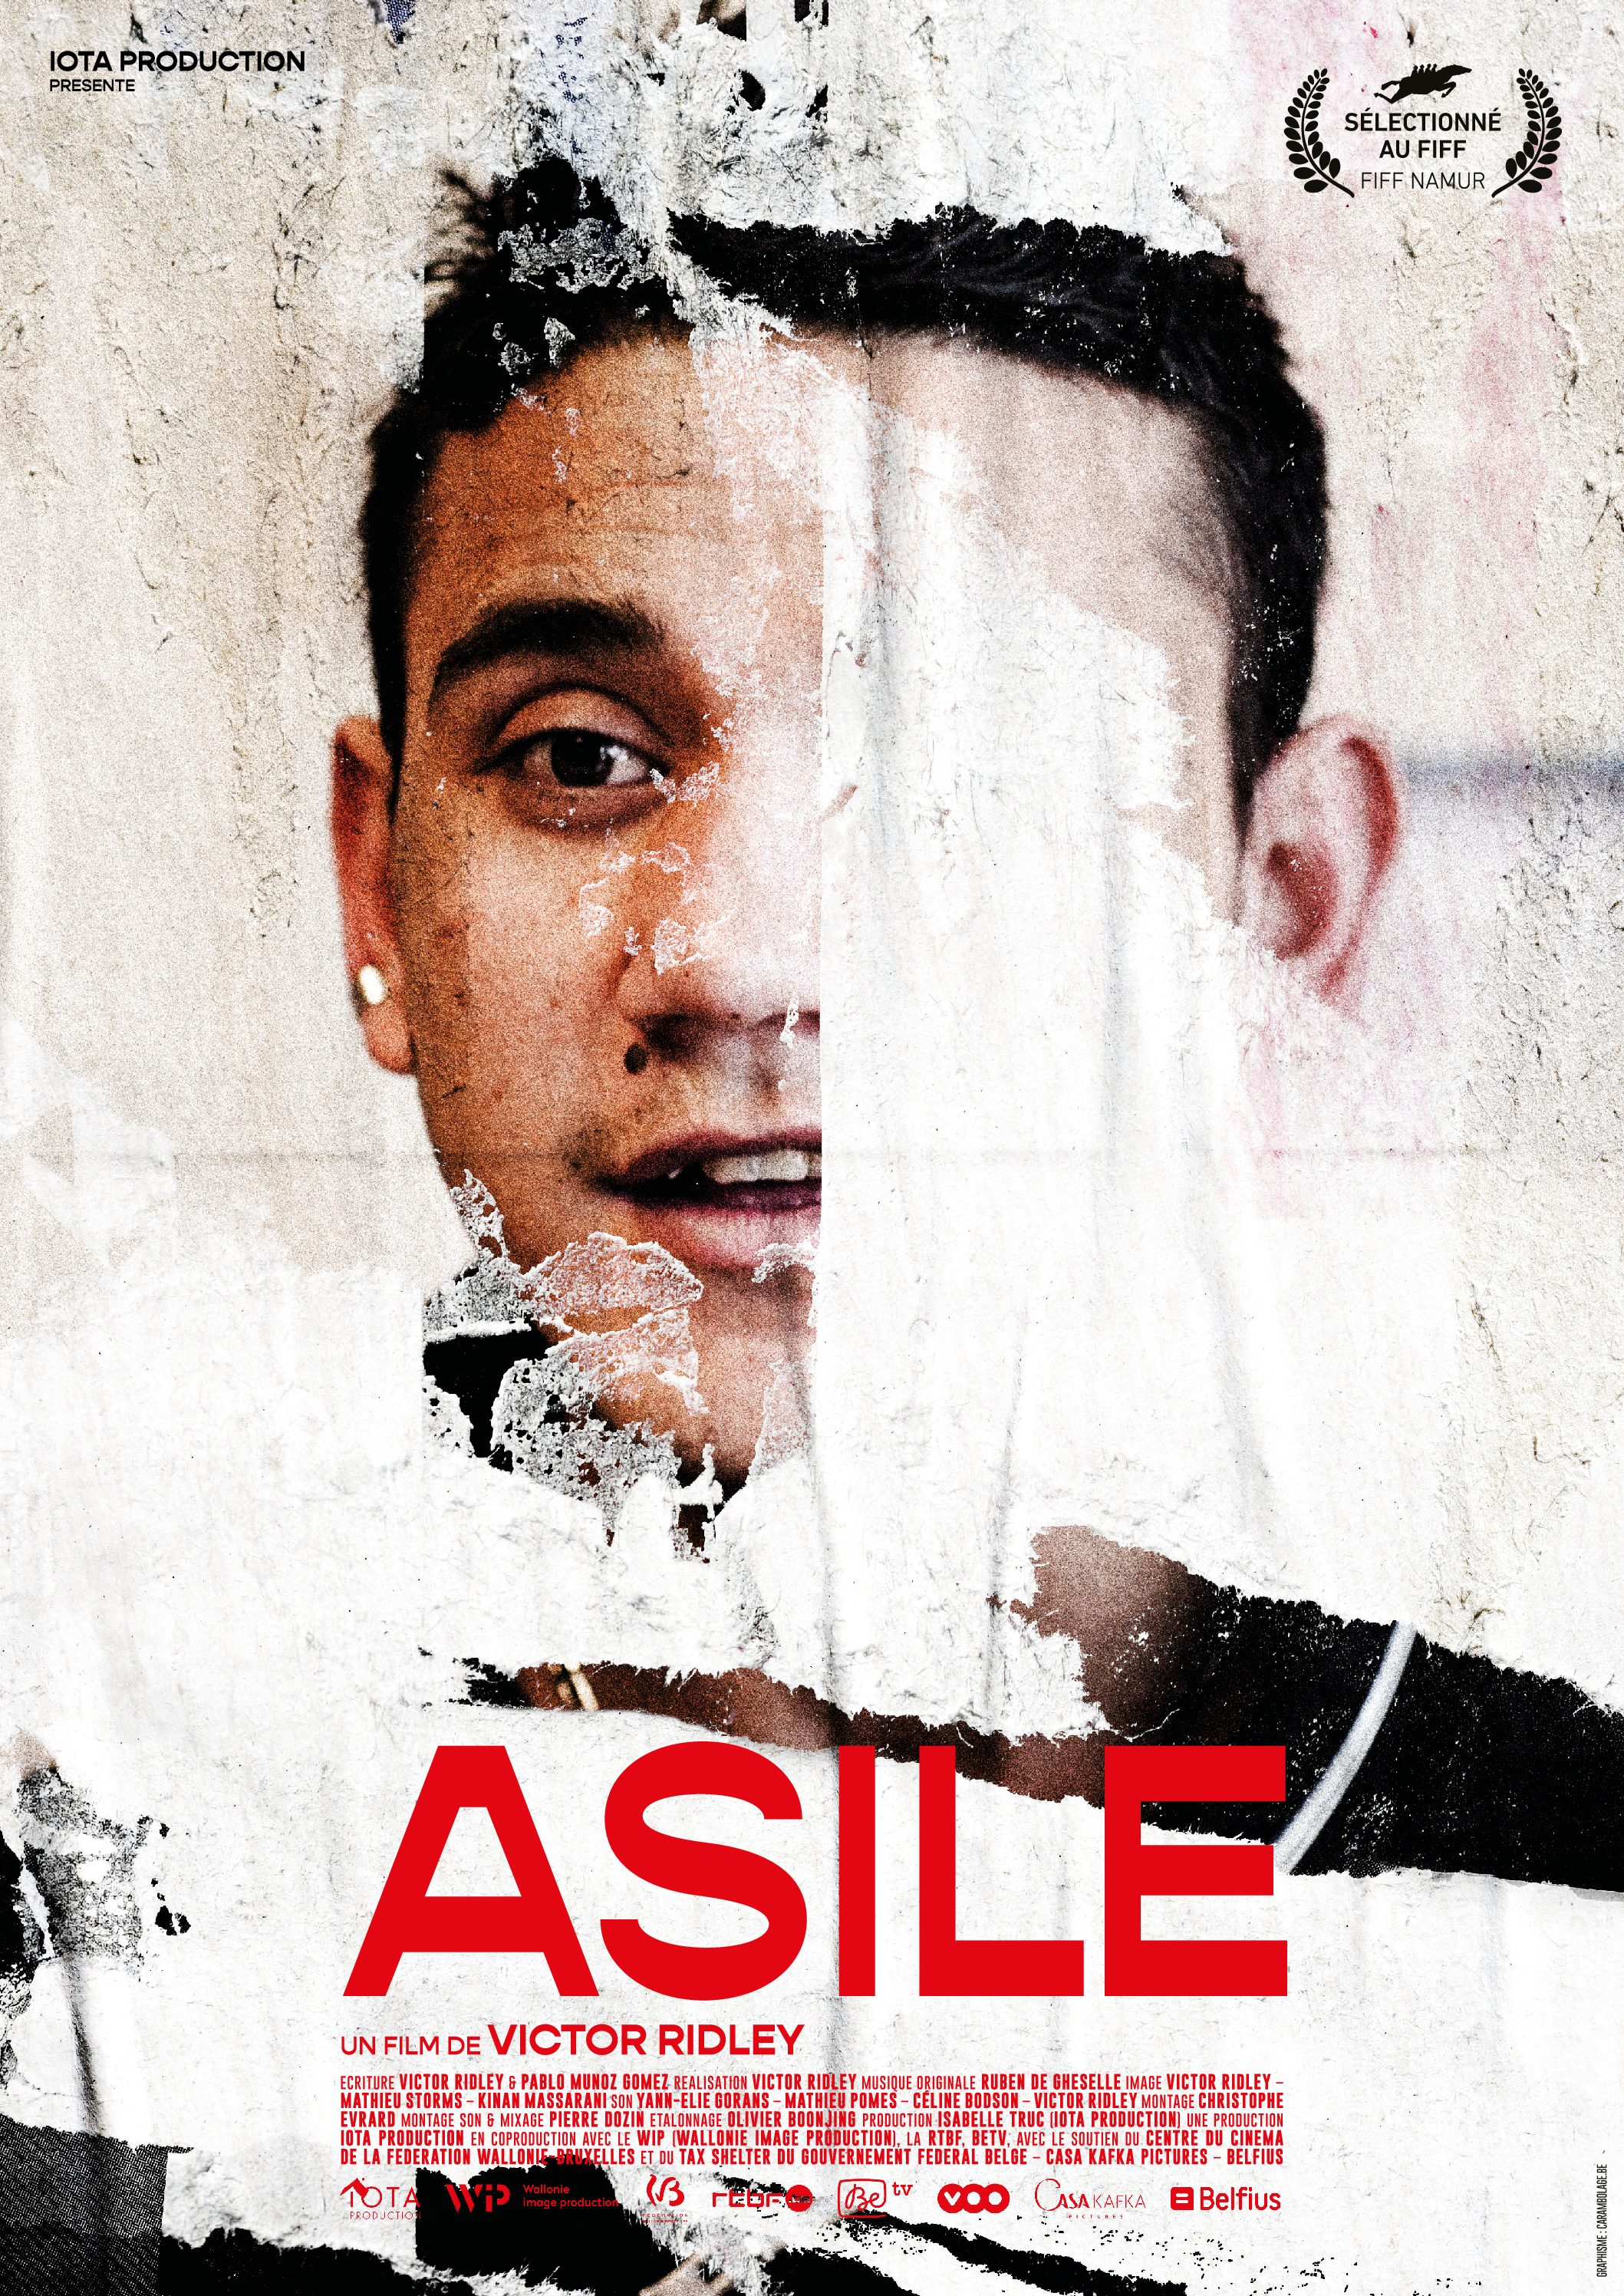 ASILE soon broadcasted on RTBF